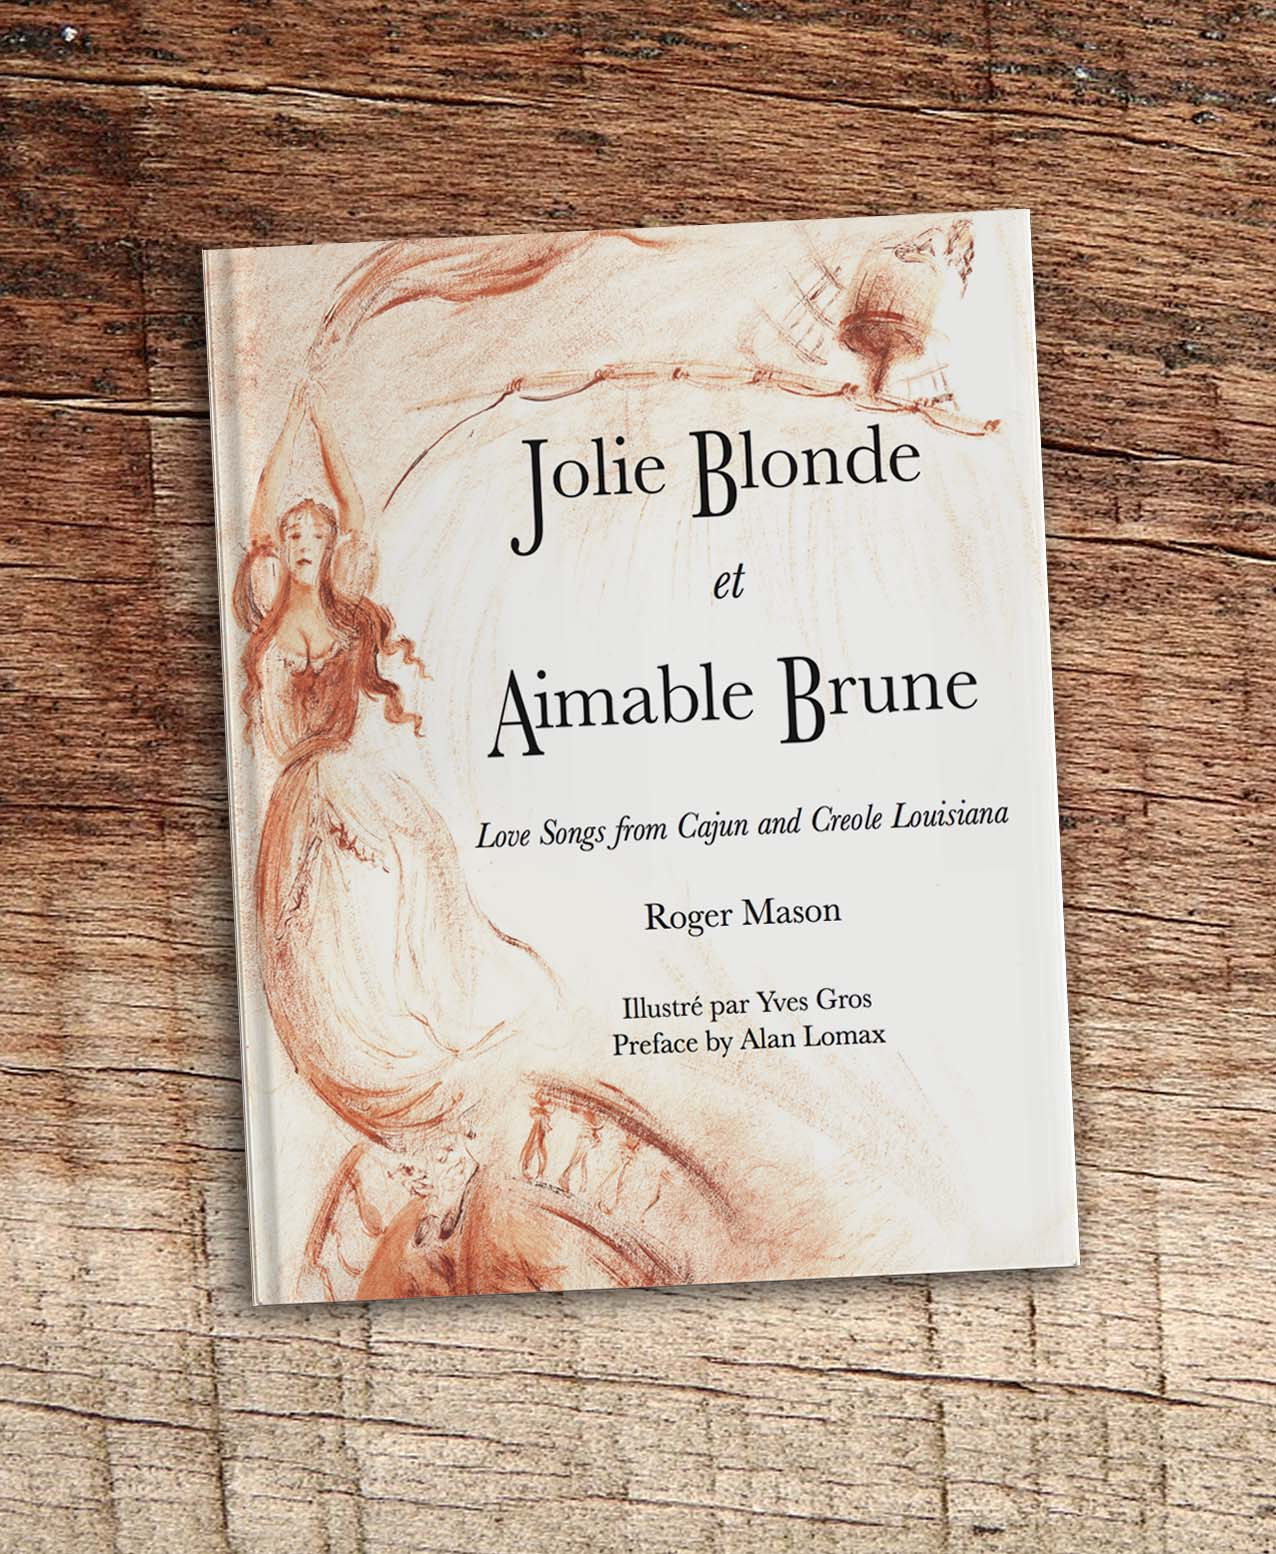 Praise for jolie blonde - ffff